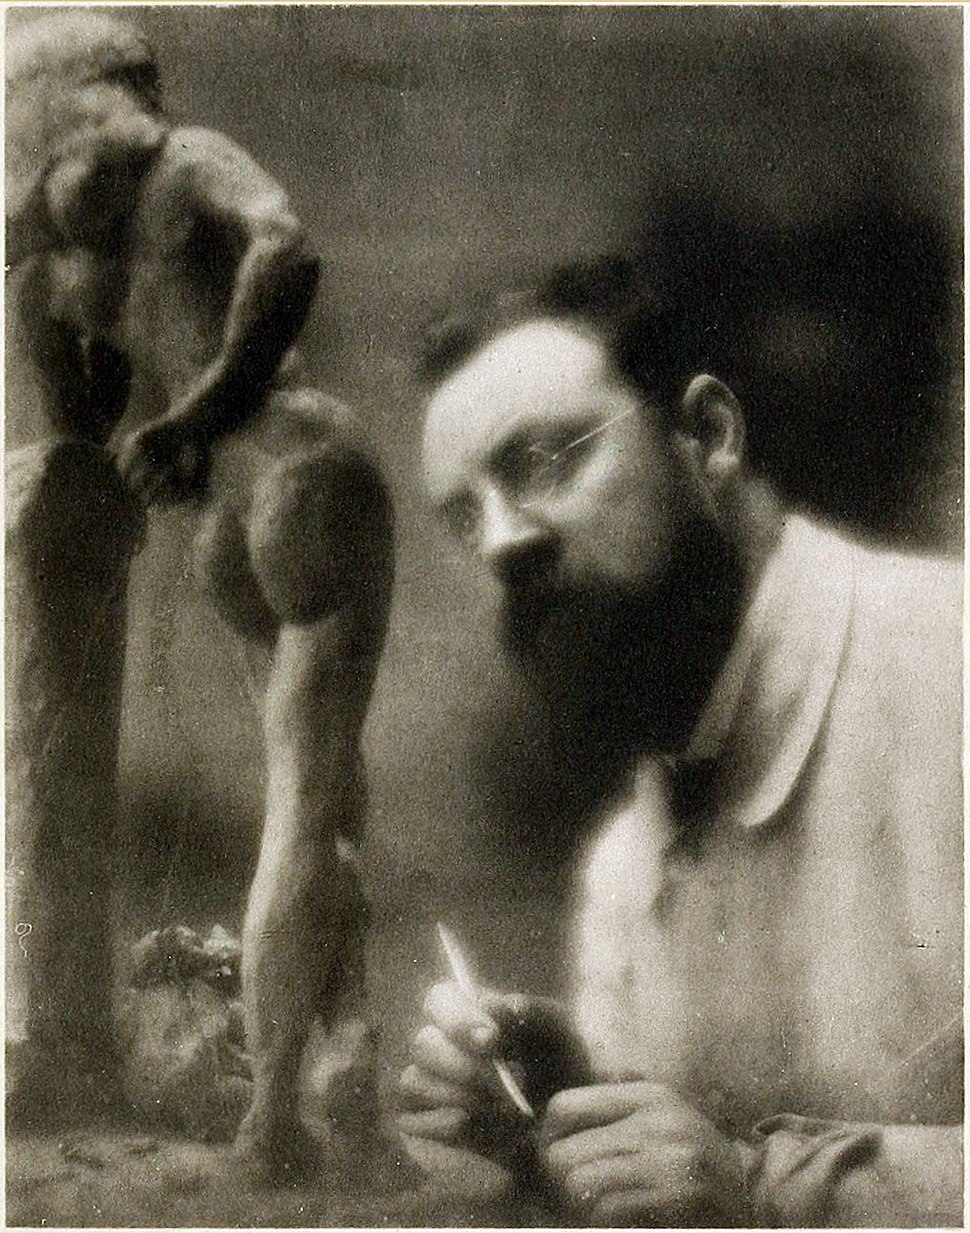 Henri Matisse and La Serpentine, fall 1909, Issy-les-Moulineaux, photograph by Edward Steichen.